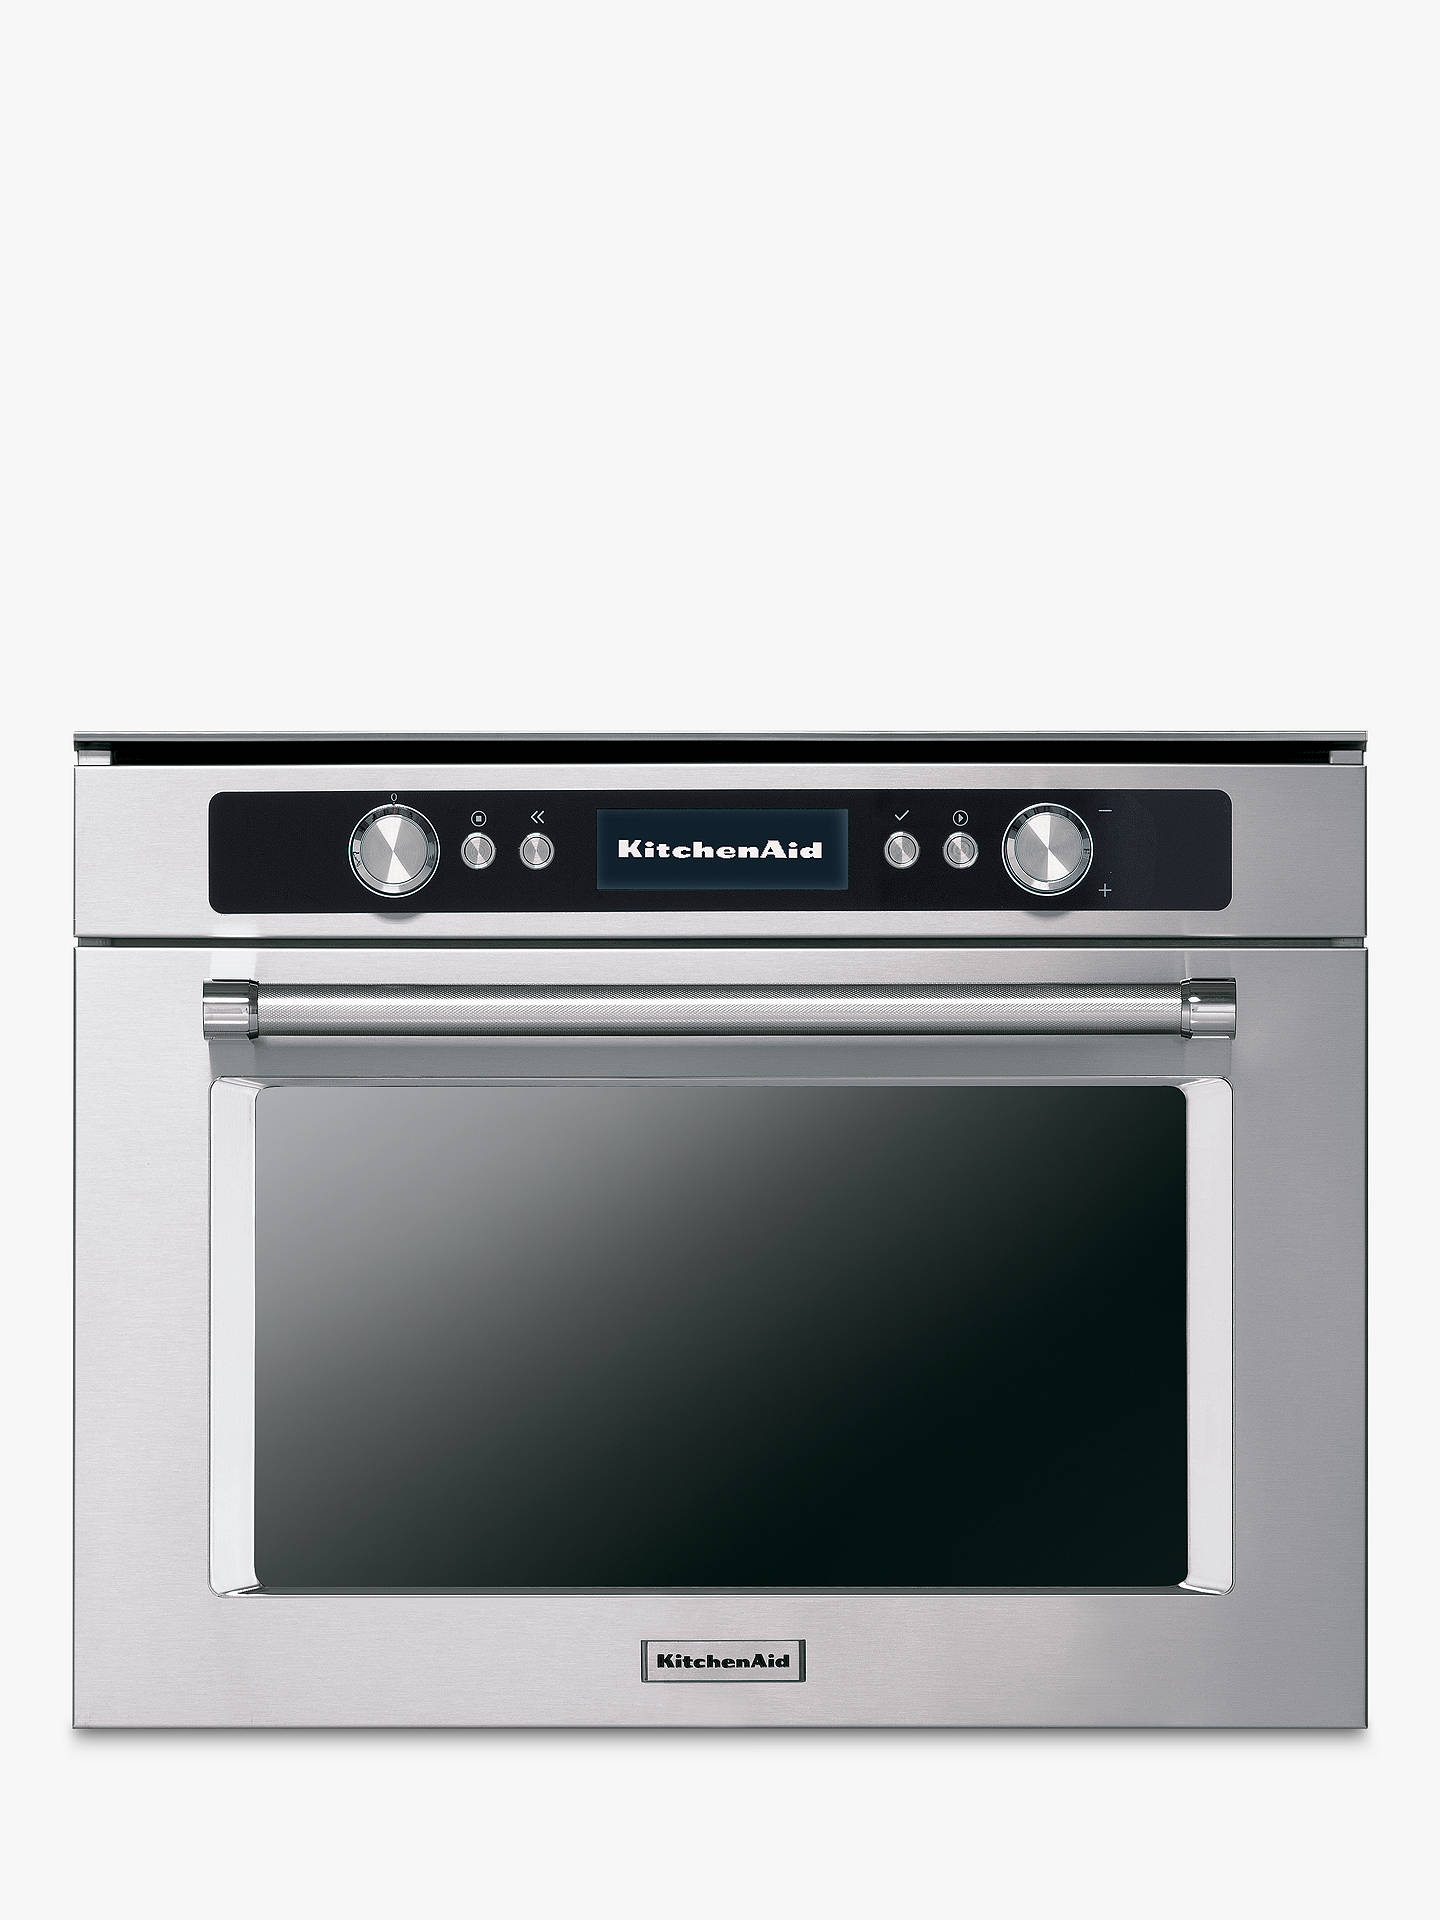 BuyKitchenAid KMQCX45600 Built-in Multifunction Microwave Oven, Stainless Steel Online at johnlewis.com